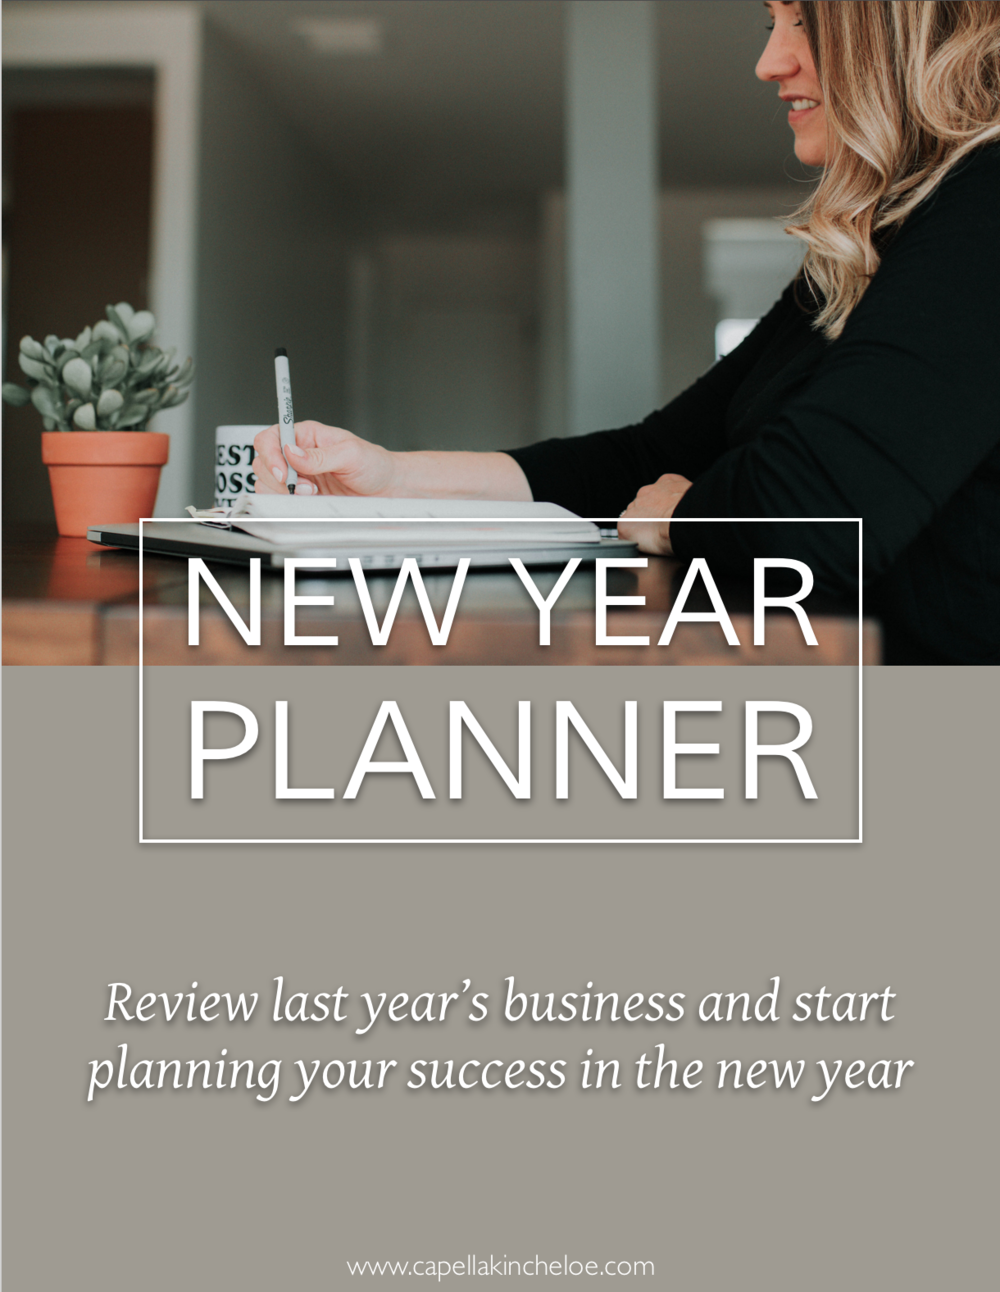 Review last year's business and start planning your success in the new year.  #interiordesignbusiness #cktradesecrets